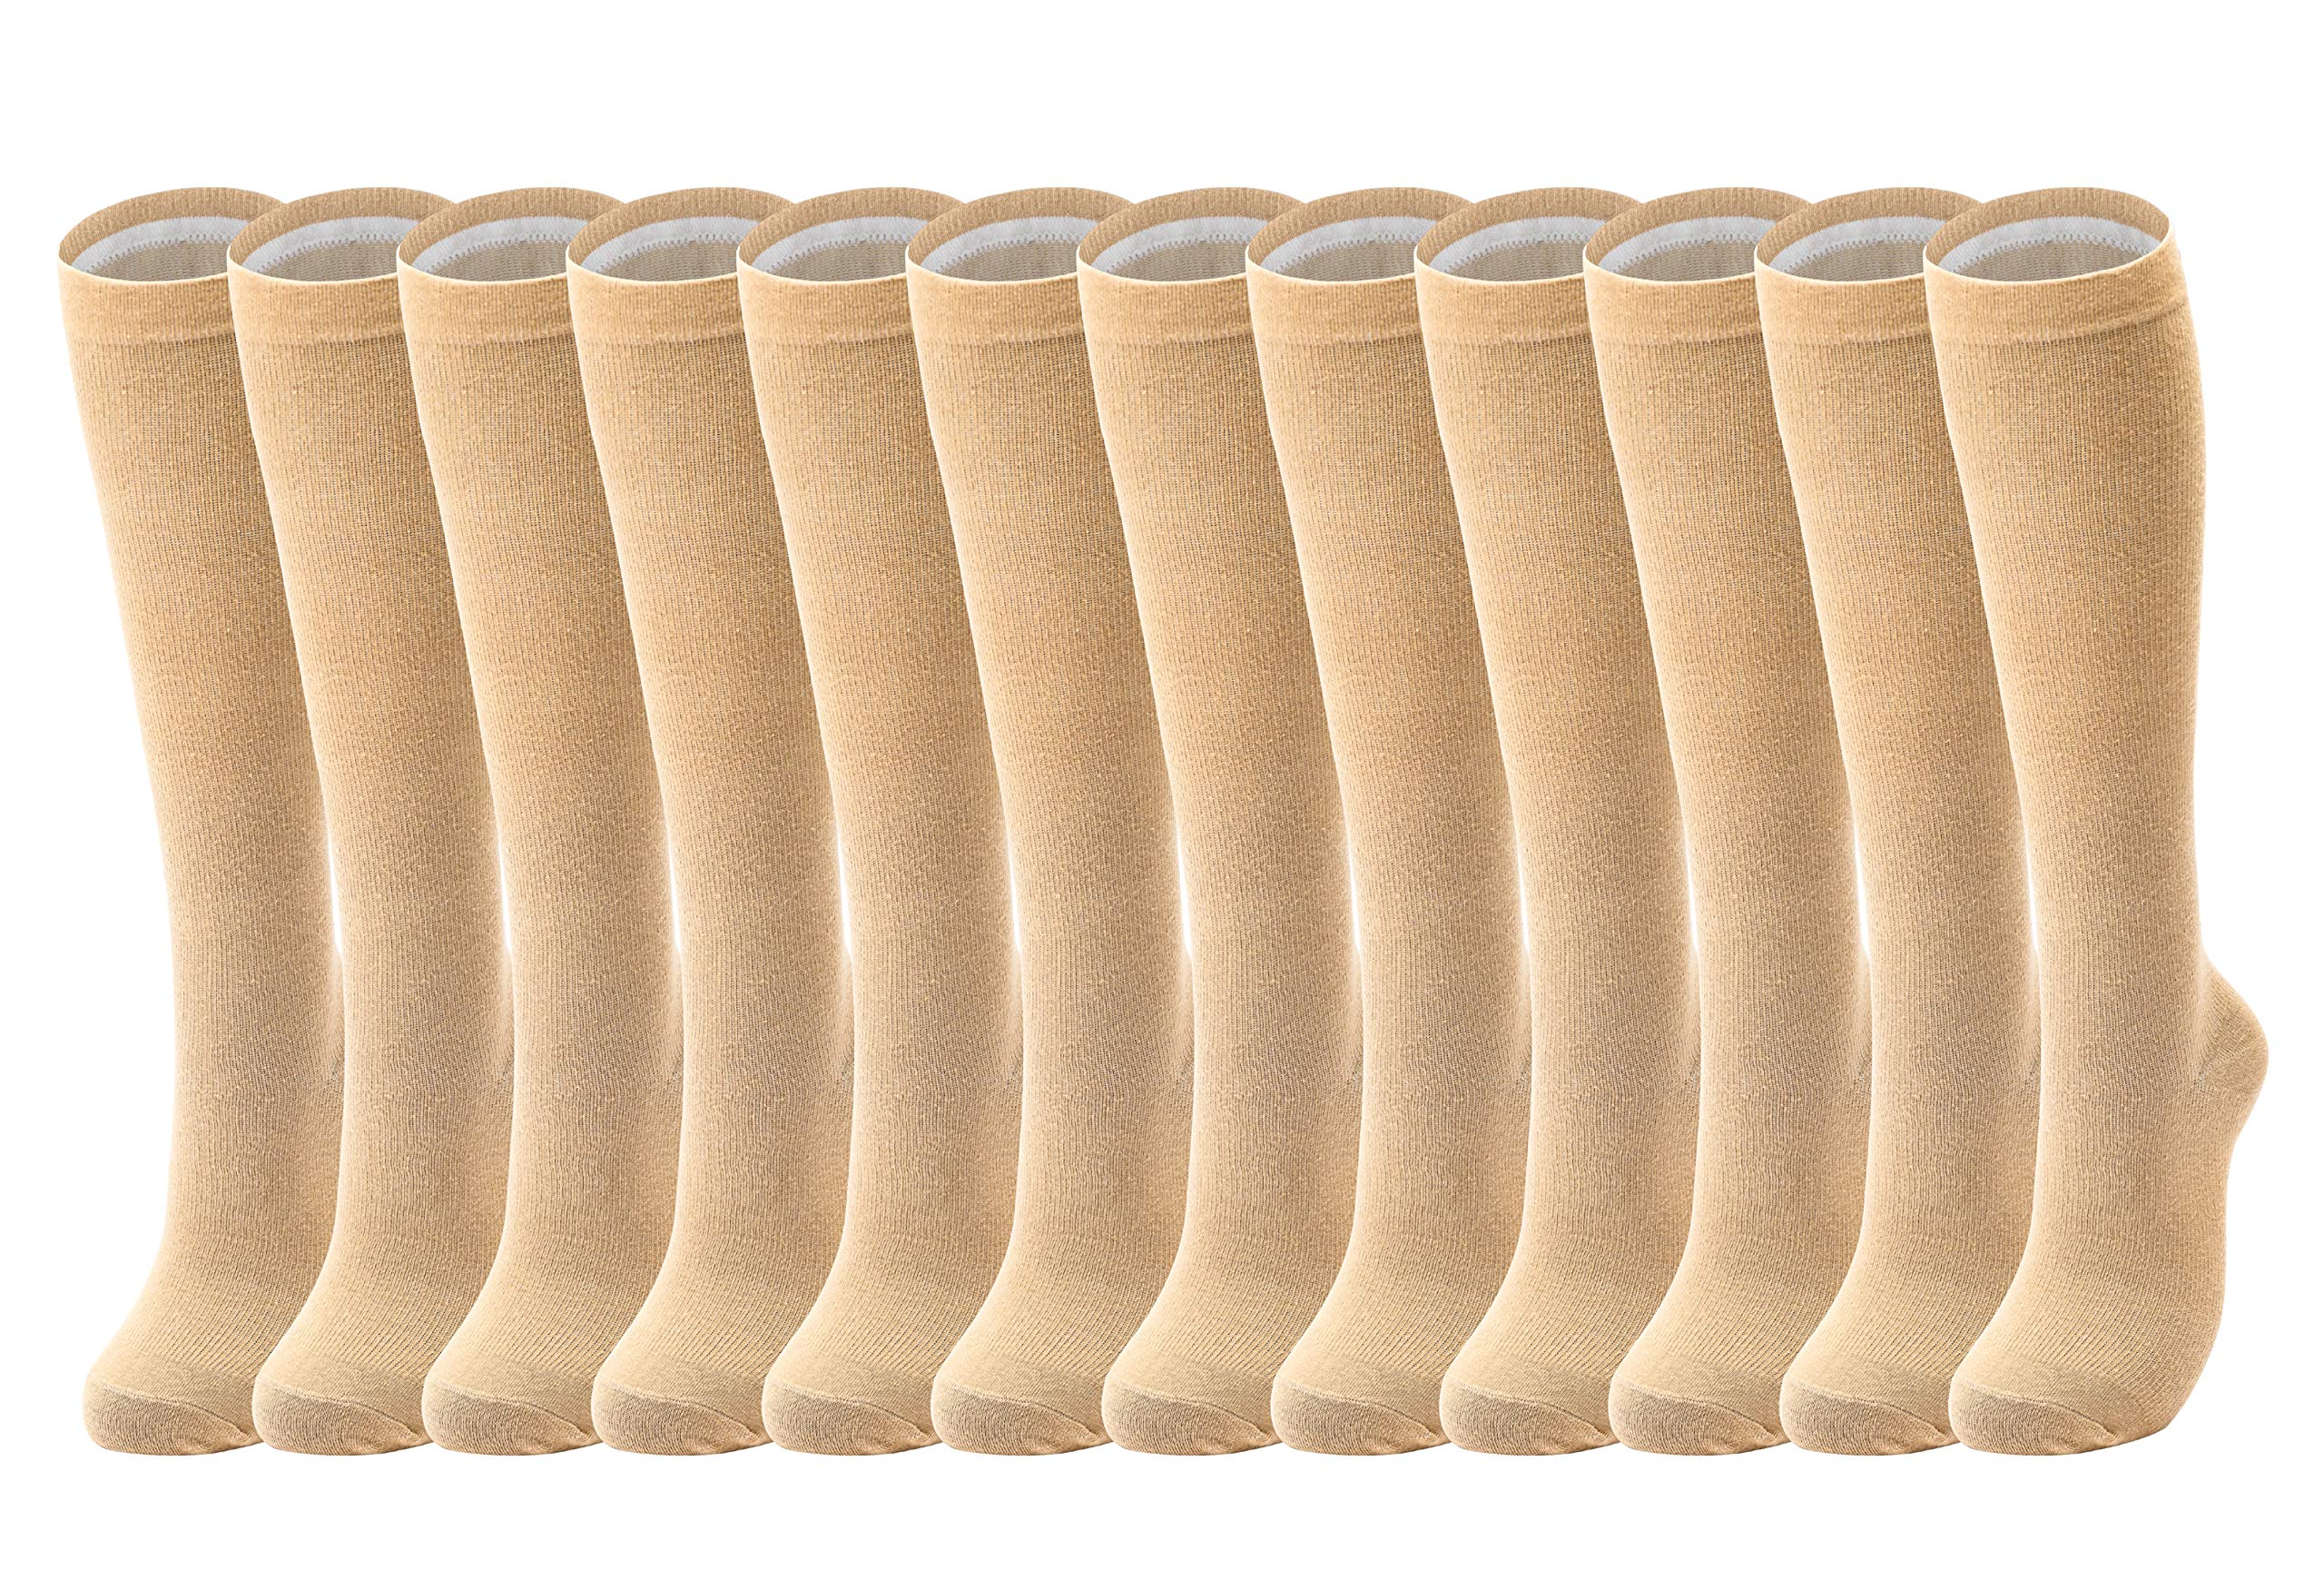 Compression Socks Women Men 15-20 mmHg, 6/7/12-Pairs Mens Womens Athletic Sock for Dress,Running,Medical,Varicose Veins,Travel (Skin color-12 pairs, L/XL(US Women 8-15.5/US Men 8-14)) by Cored Health